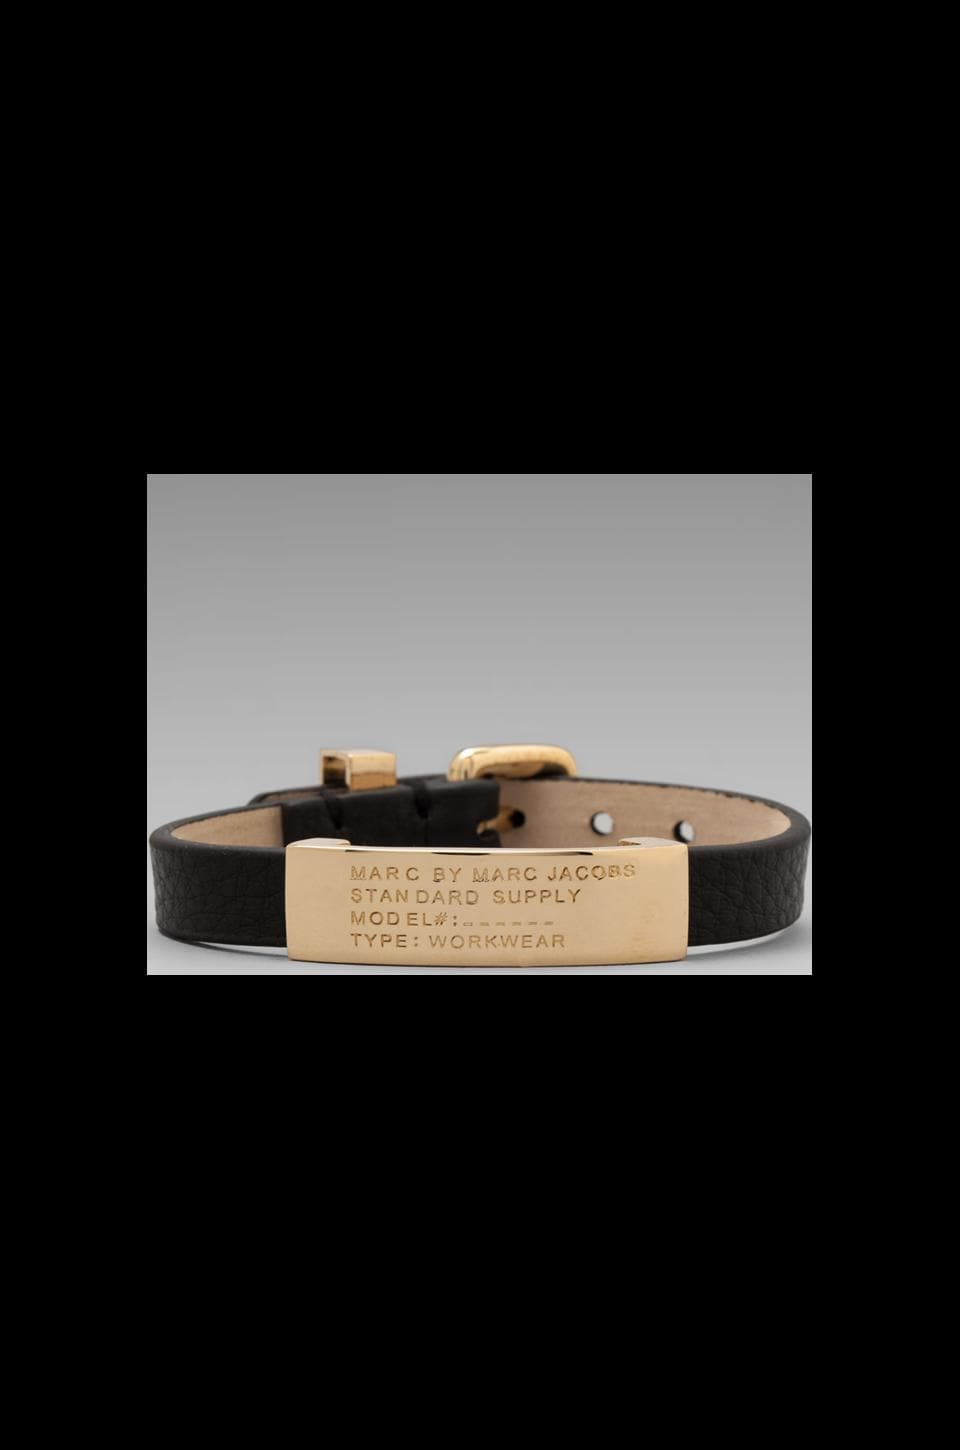 Marc by Marc Jacobs Standard Supply Id Bracelet in Black/ Oro